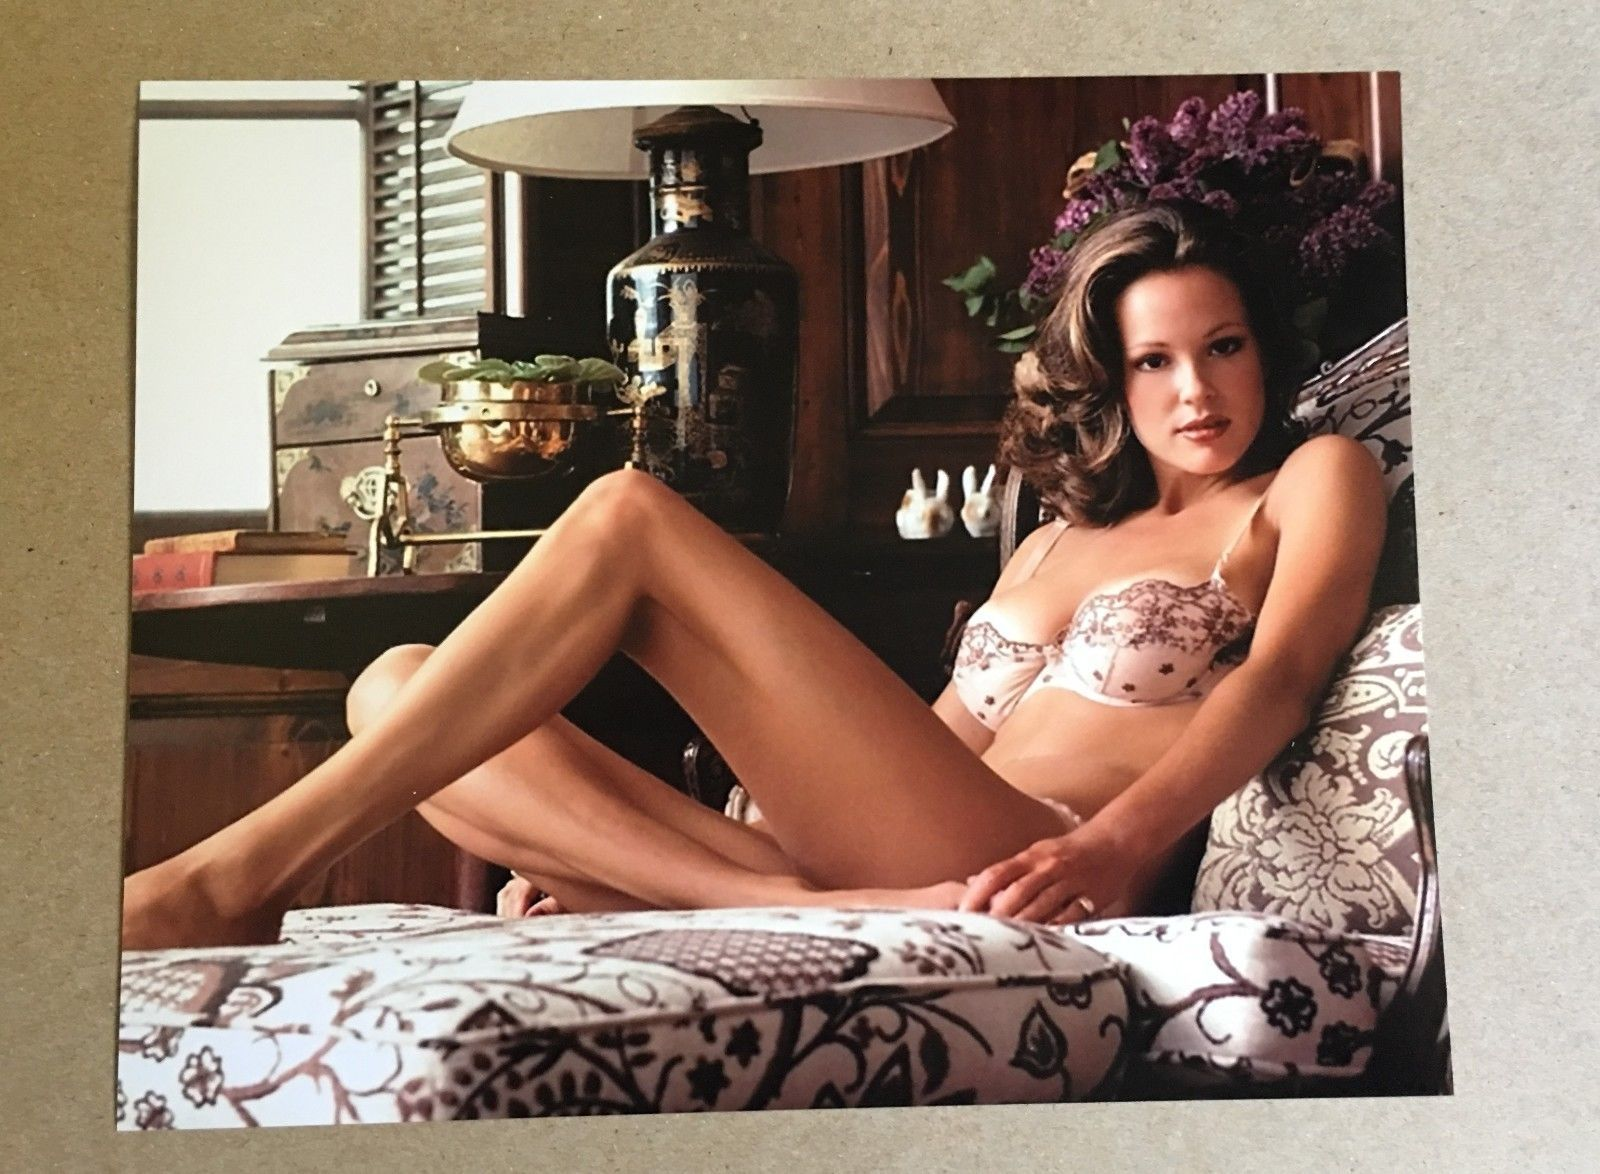 candy loving - playboy playmate - super hot - 12 x 18 photo poster